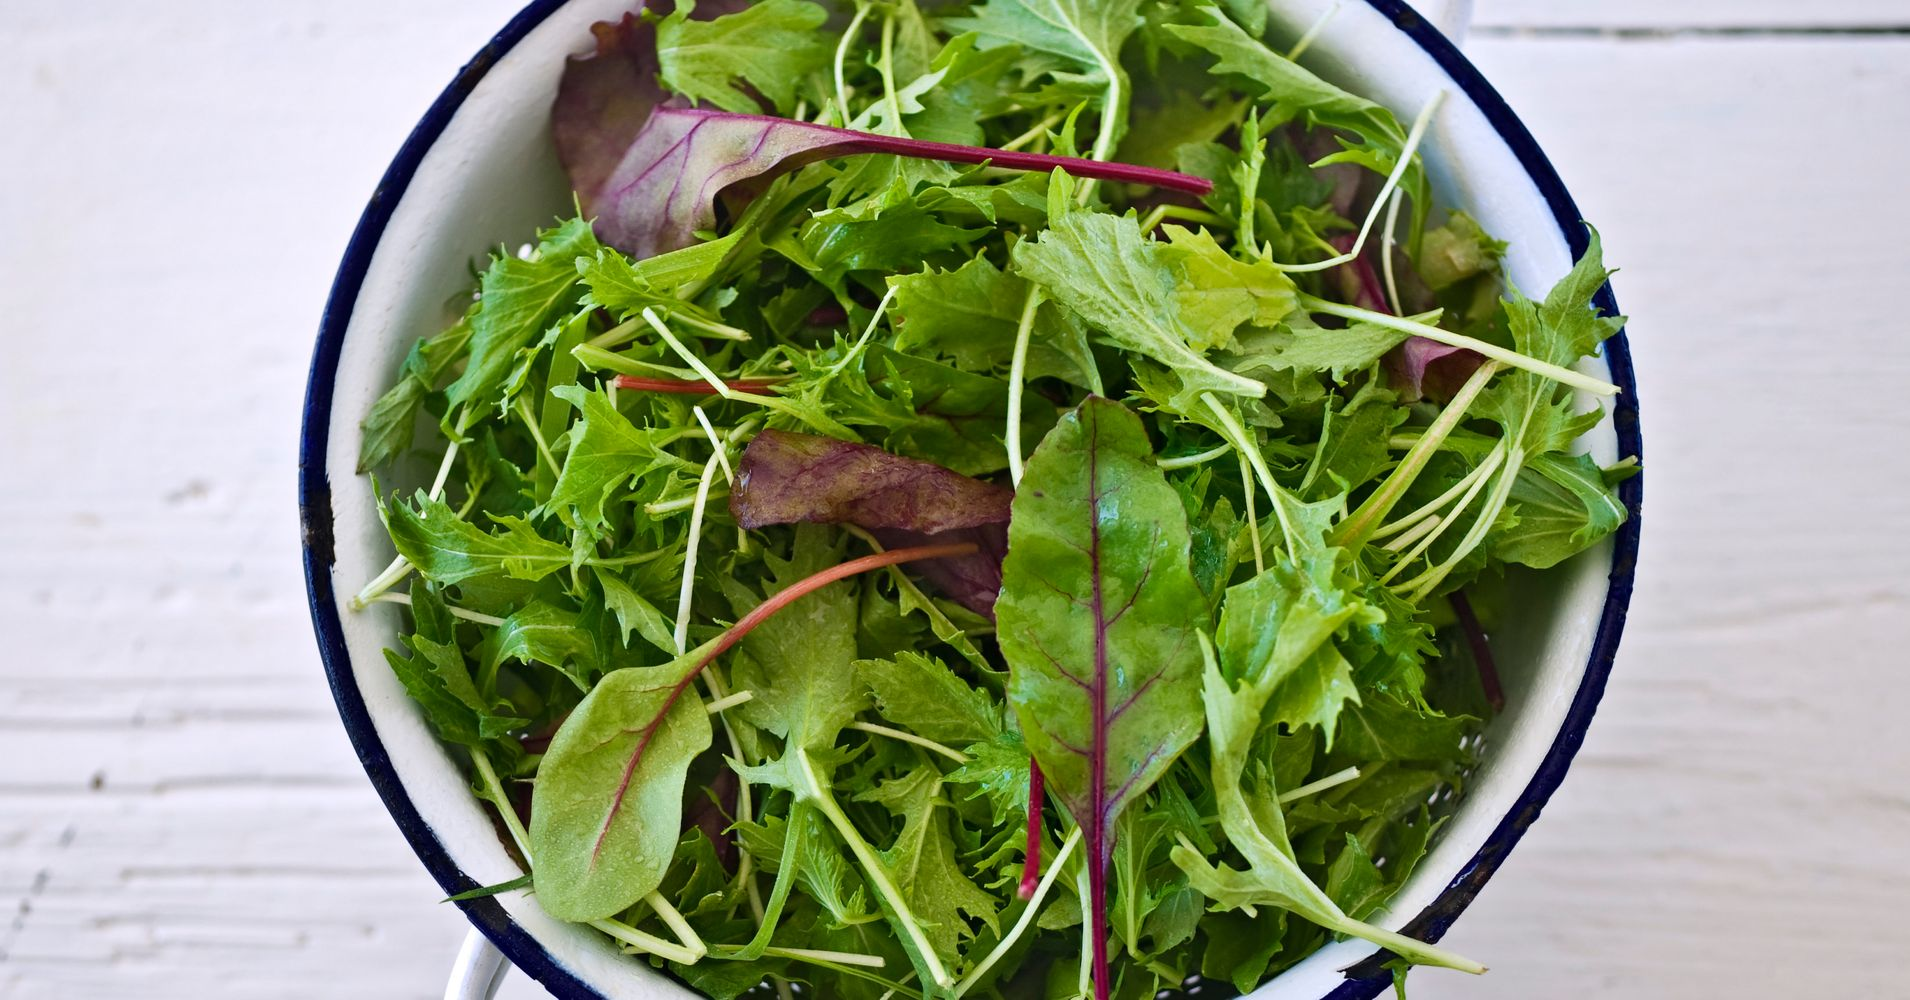 Heres What The Lettuce In Your Salad Actually Does For Your Body